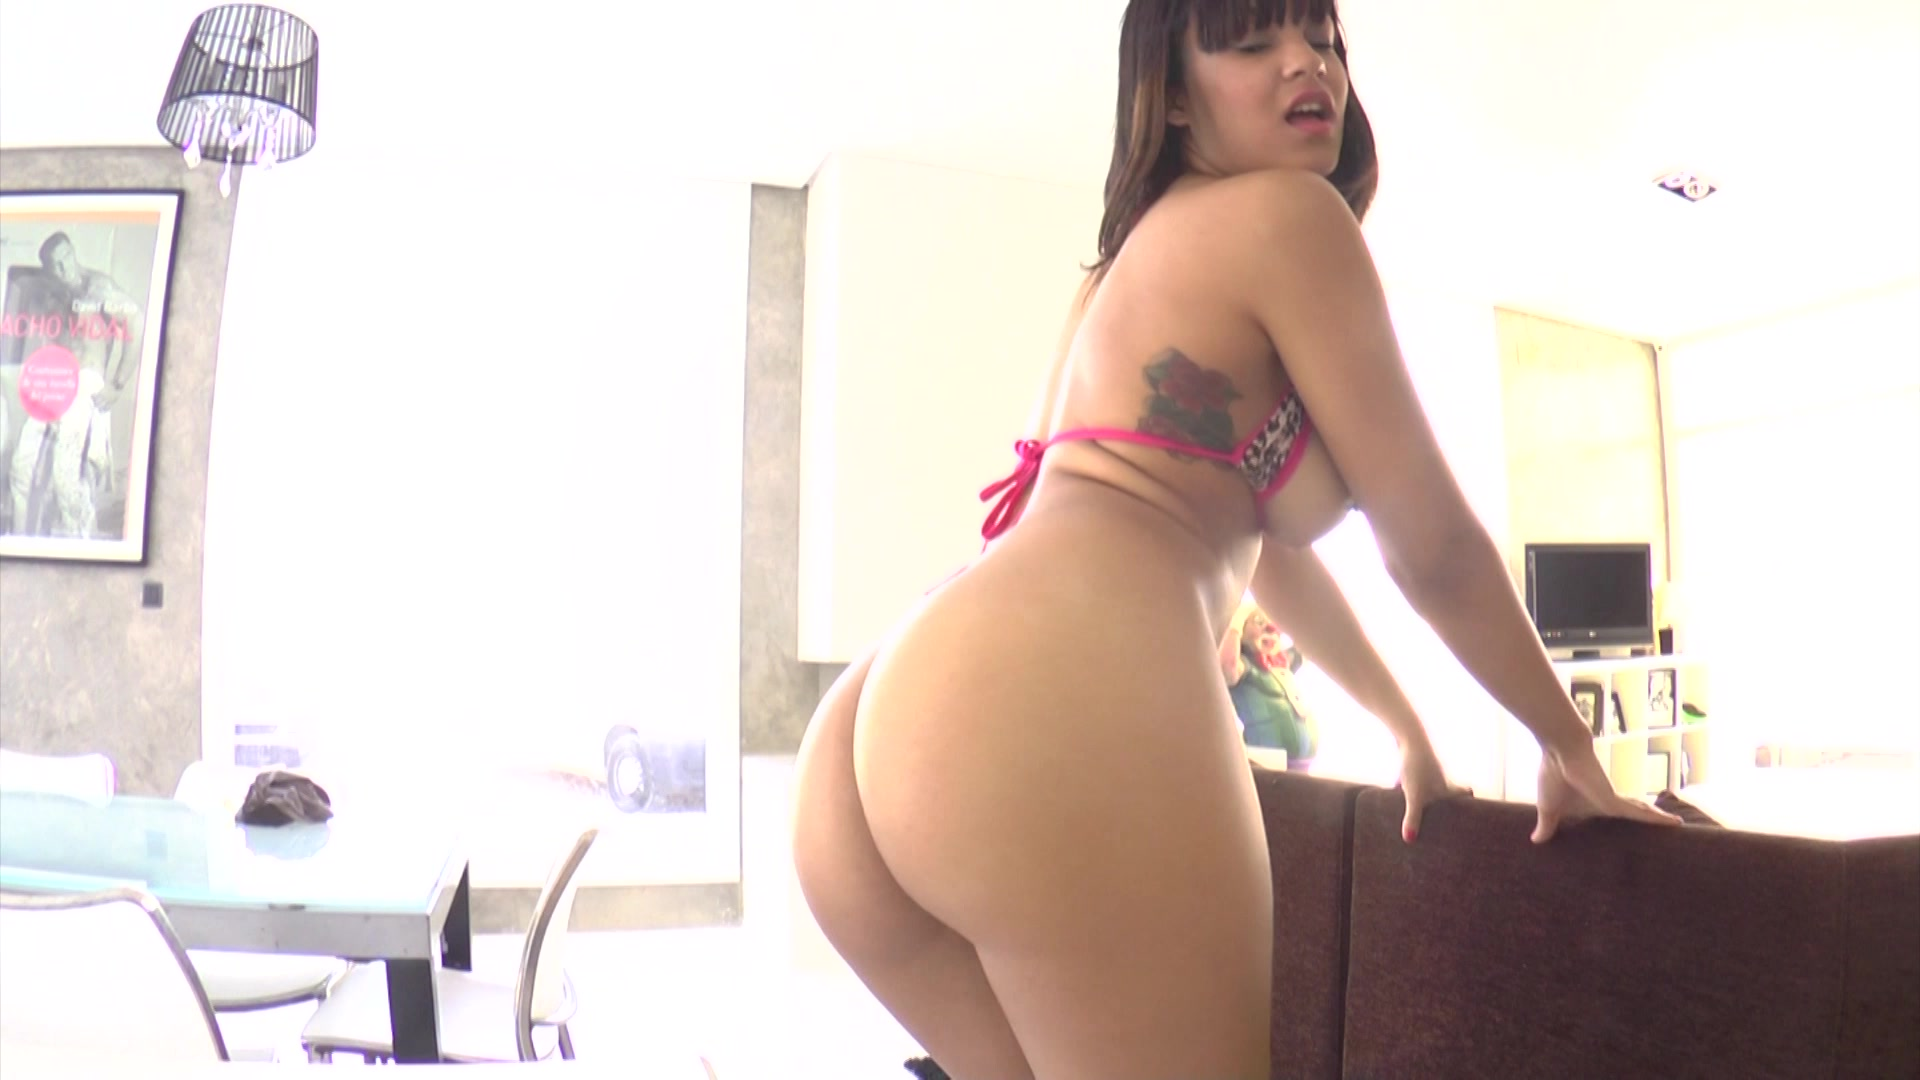 Could use nacho vidal big ass whore Her